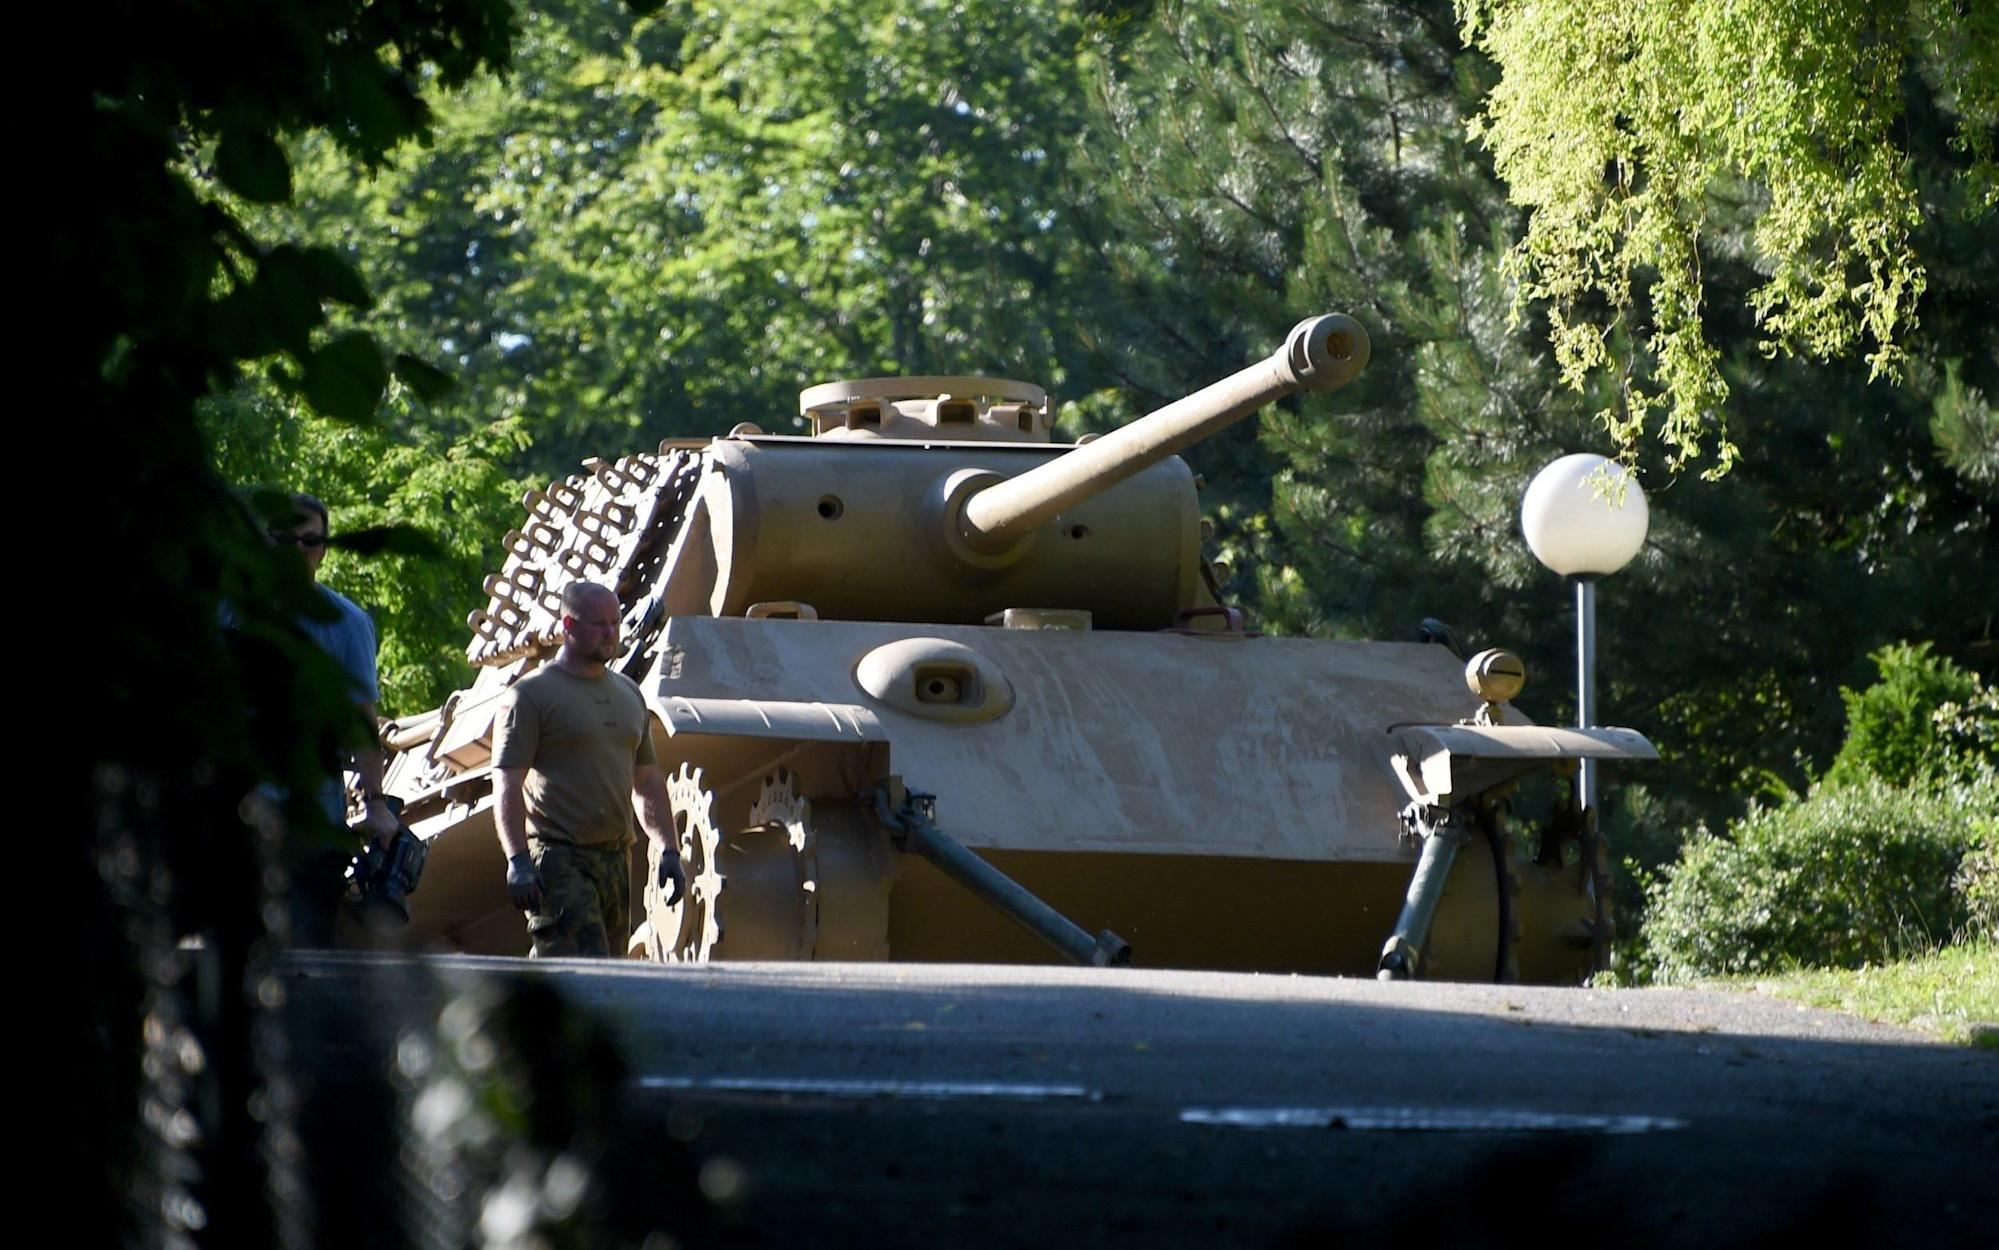 German pensioner forced to hand over Nazi tank he kept in cellar for decades